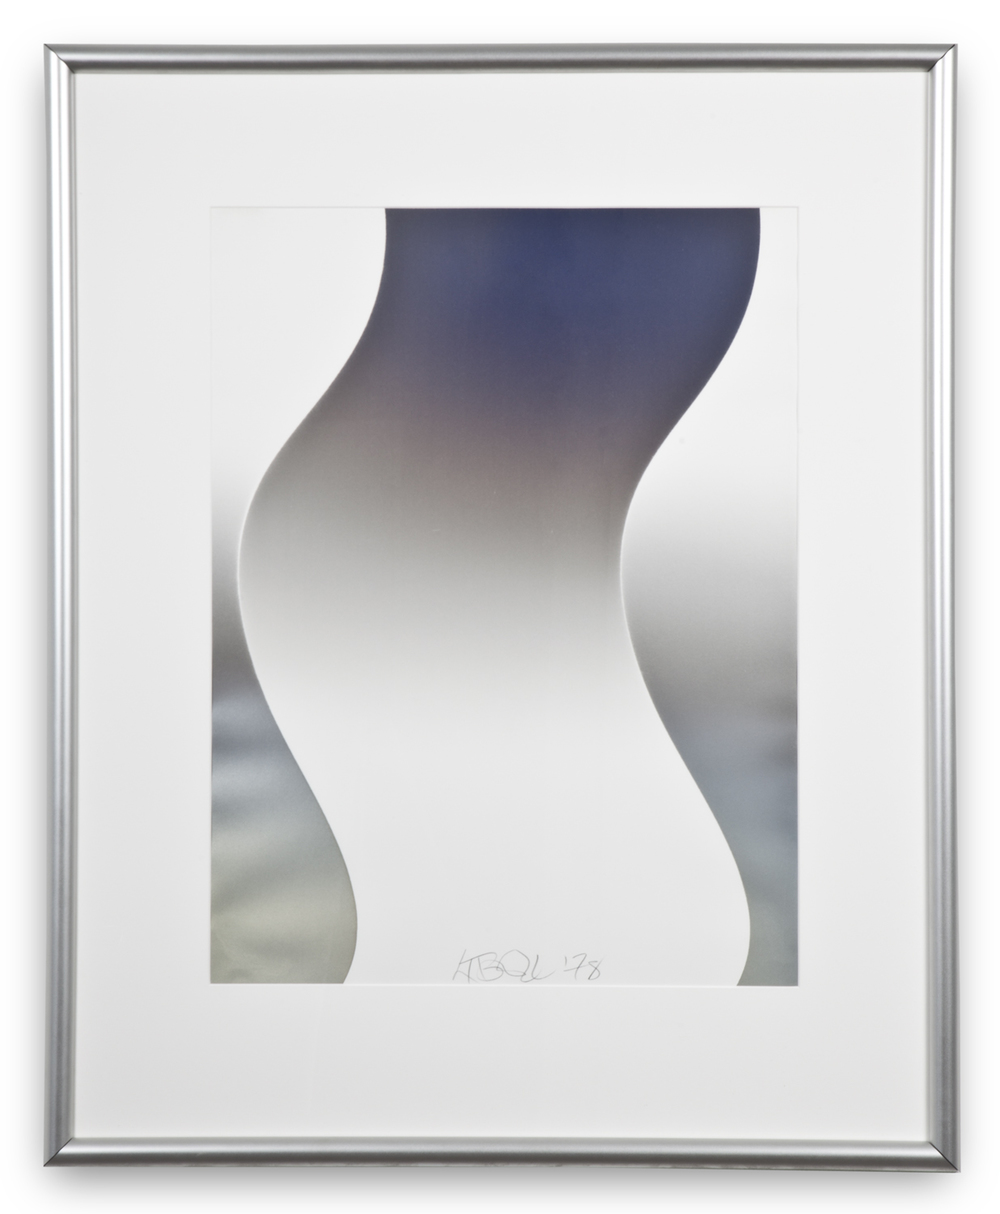 Larry Bell,  Untitled (Vapor Series)  1978, vaporized metal on paper, 41 1/2 x 33 3/4 inches